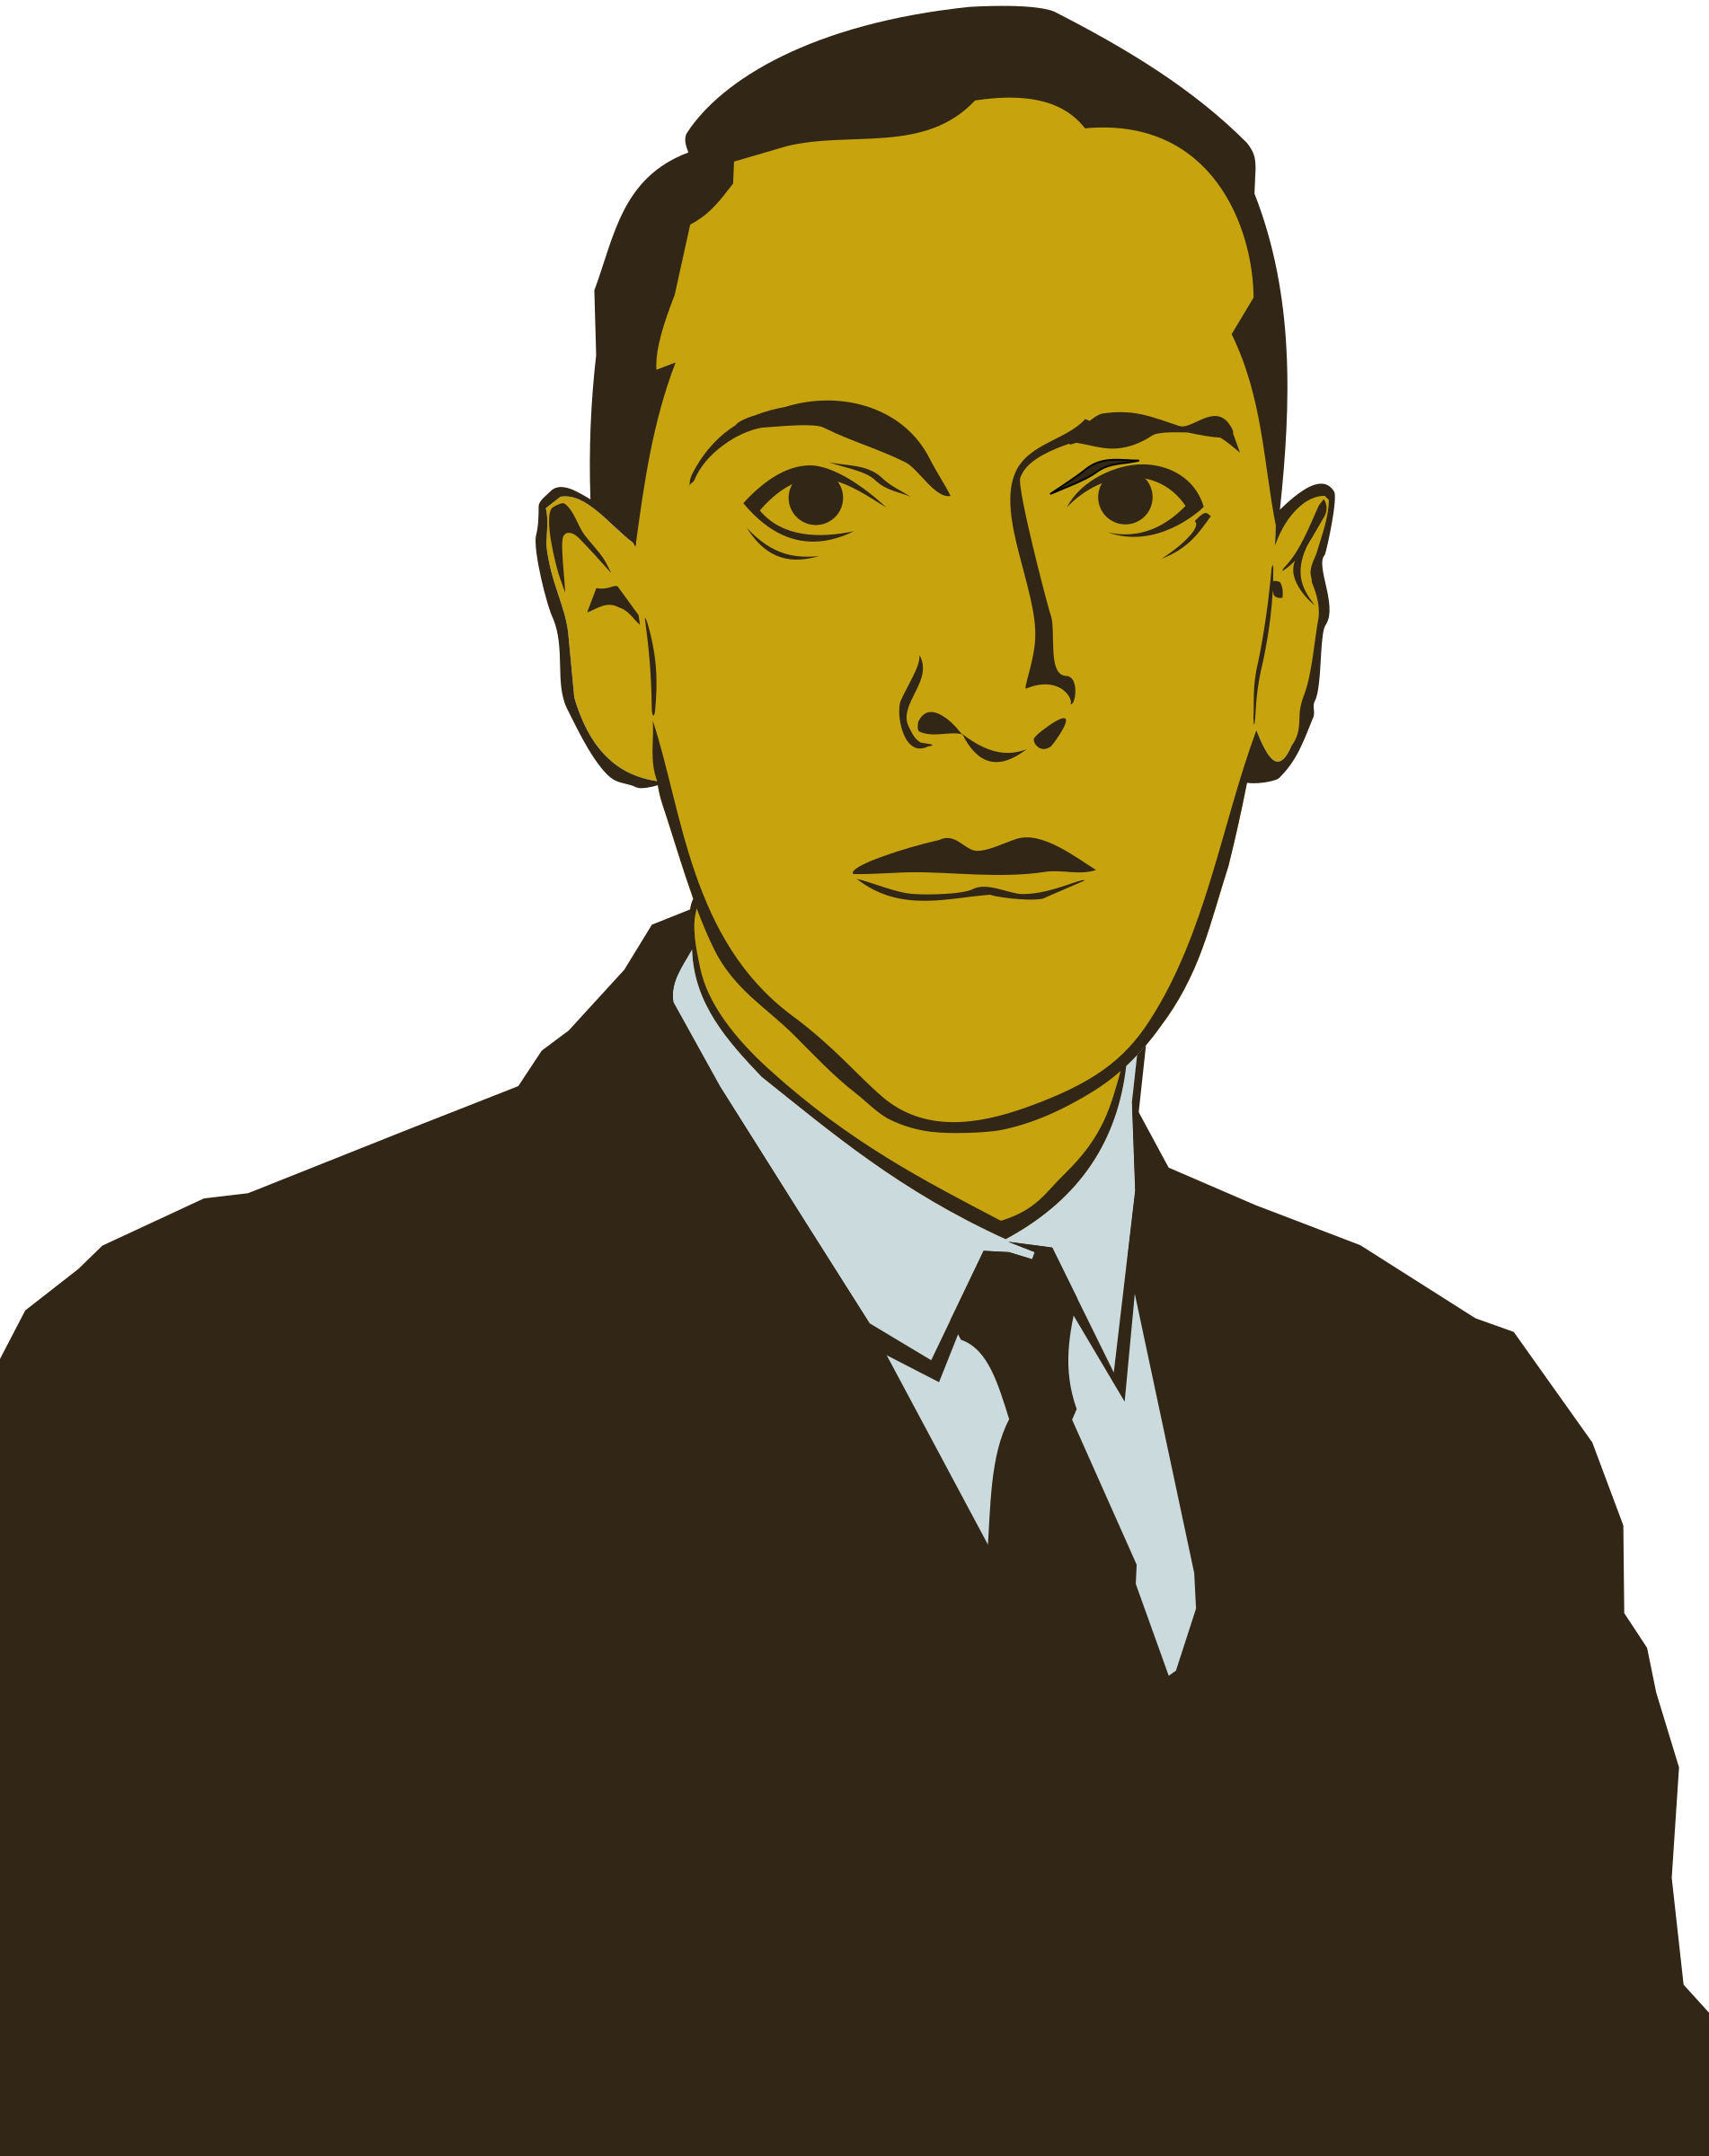 H. P. Lovecraft by conte magnus